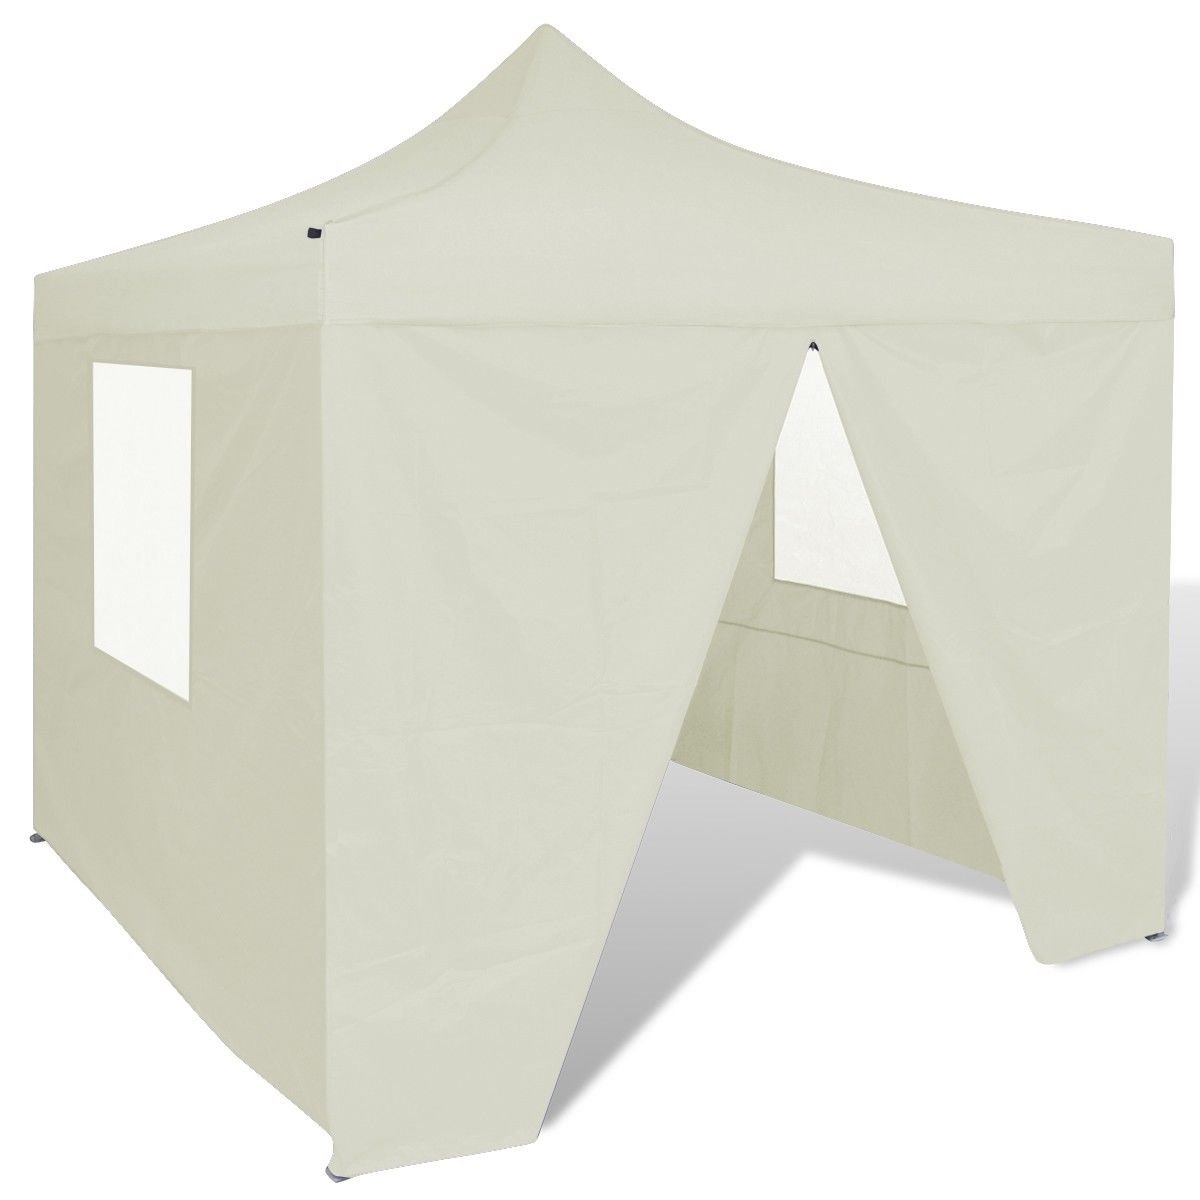 Foldable Canopy Party Tent 10' x 10' with 4 Walls, Wedding Event cater Tent, Cream